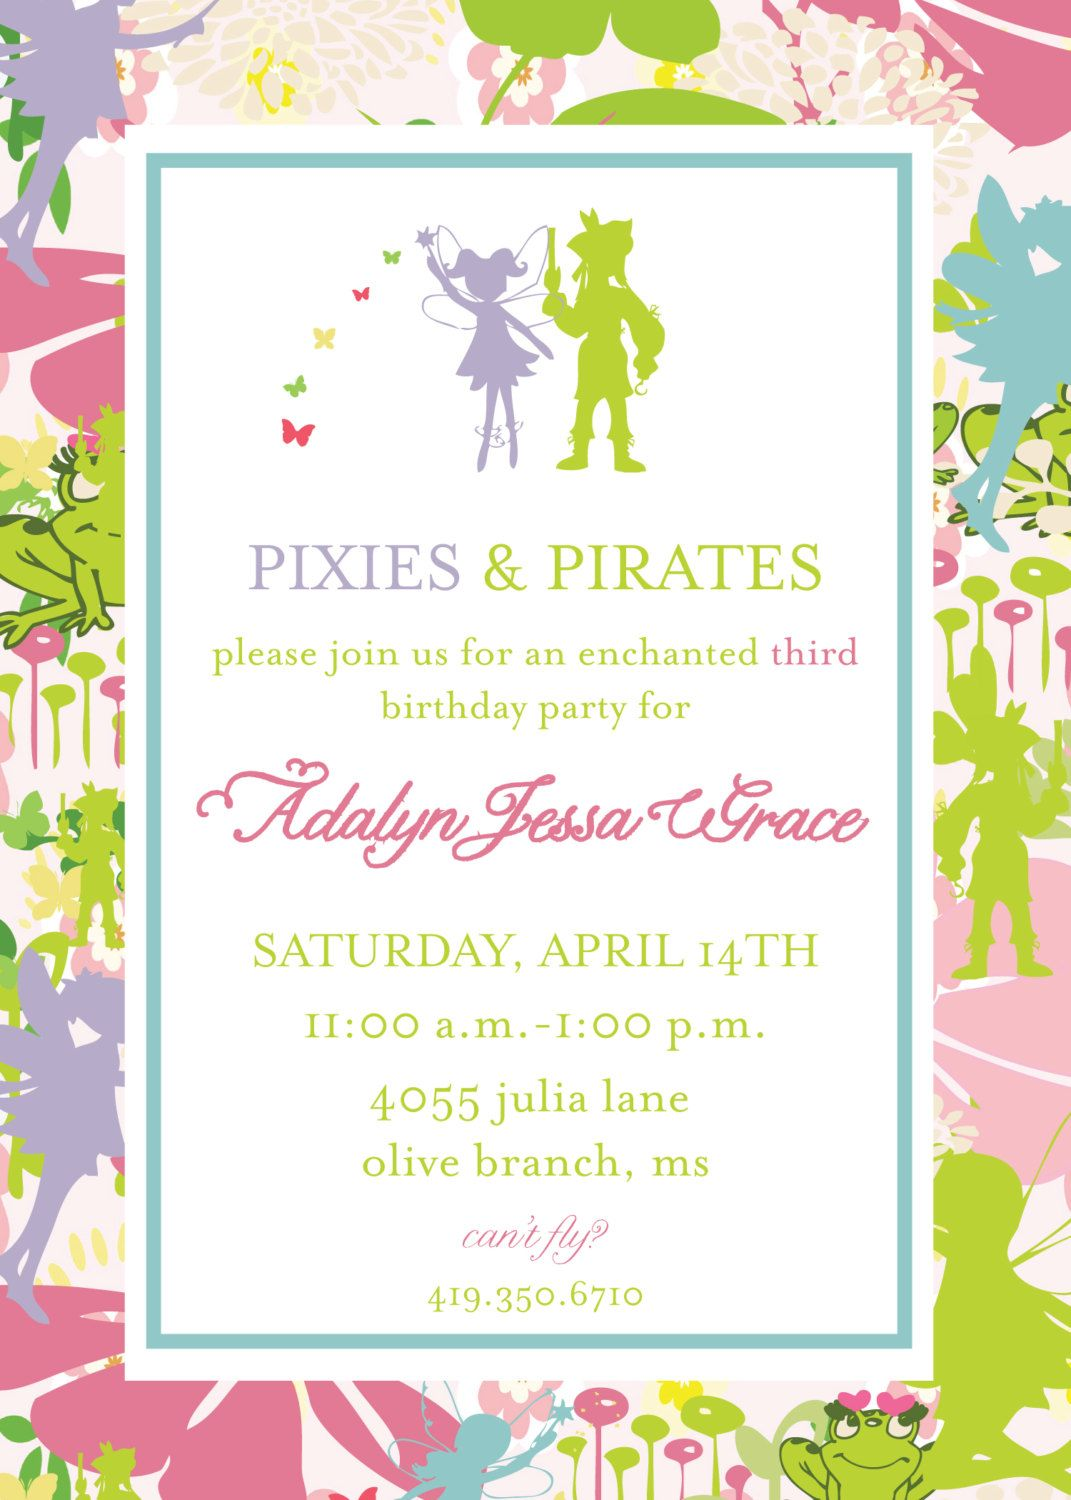 Pixie and Pirate Invitation- Tinkerbell | Pirate invitations, Twin ...